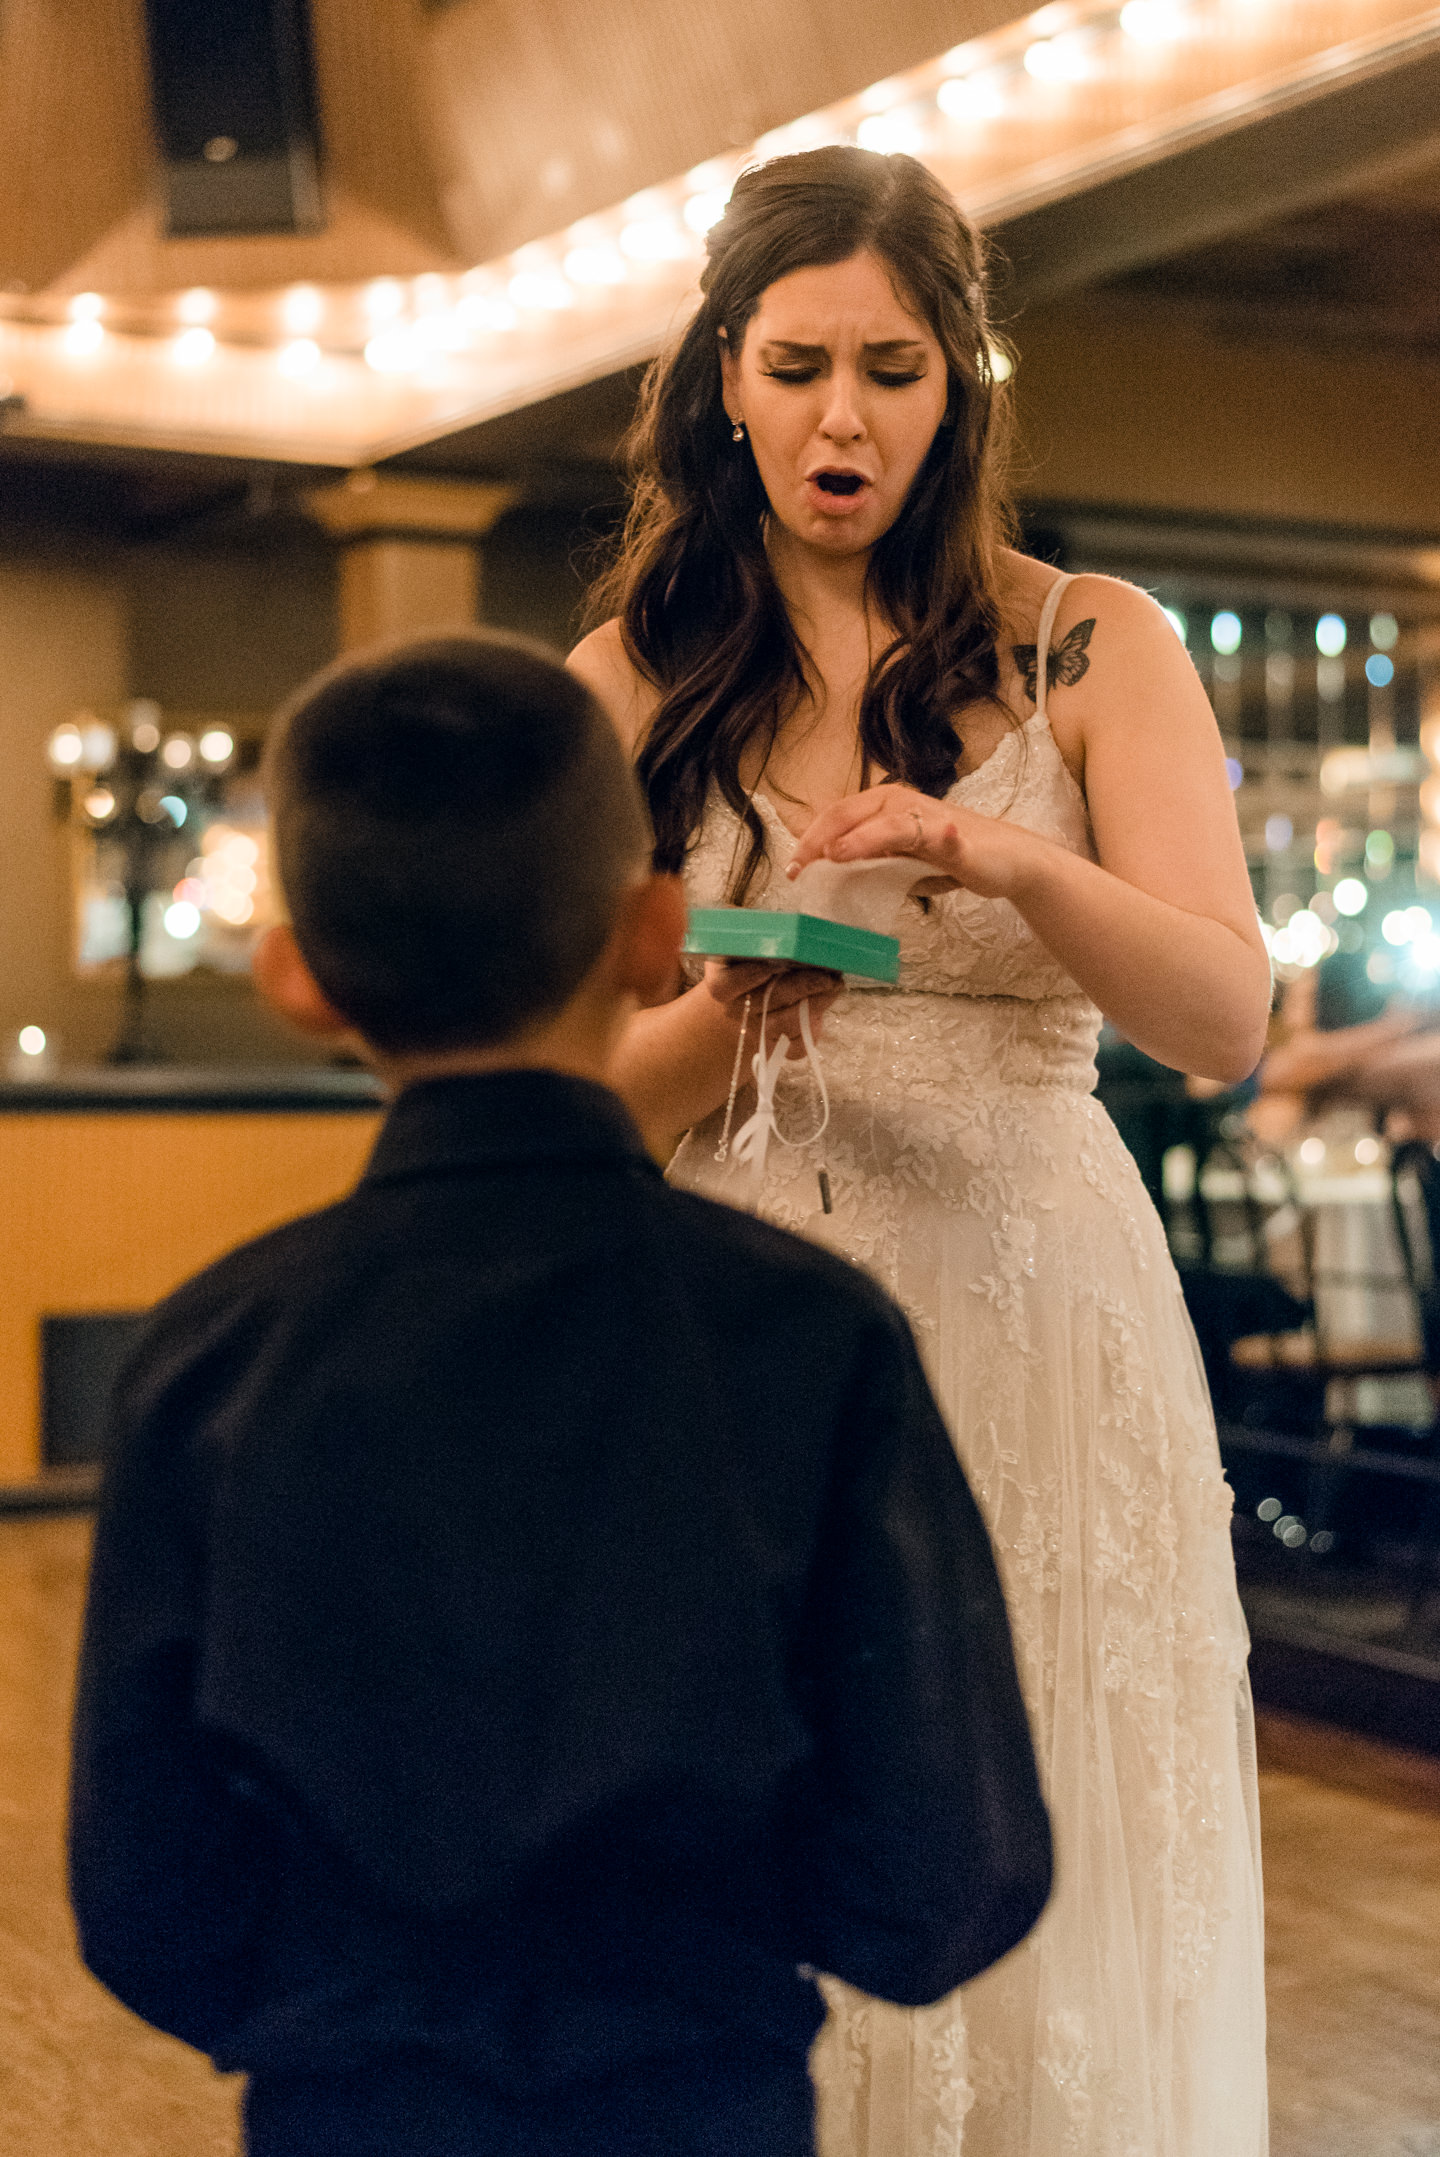 Bride Gift Reception at Lake Union Cafe